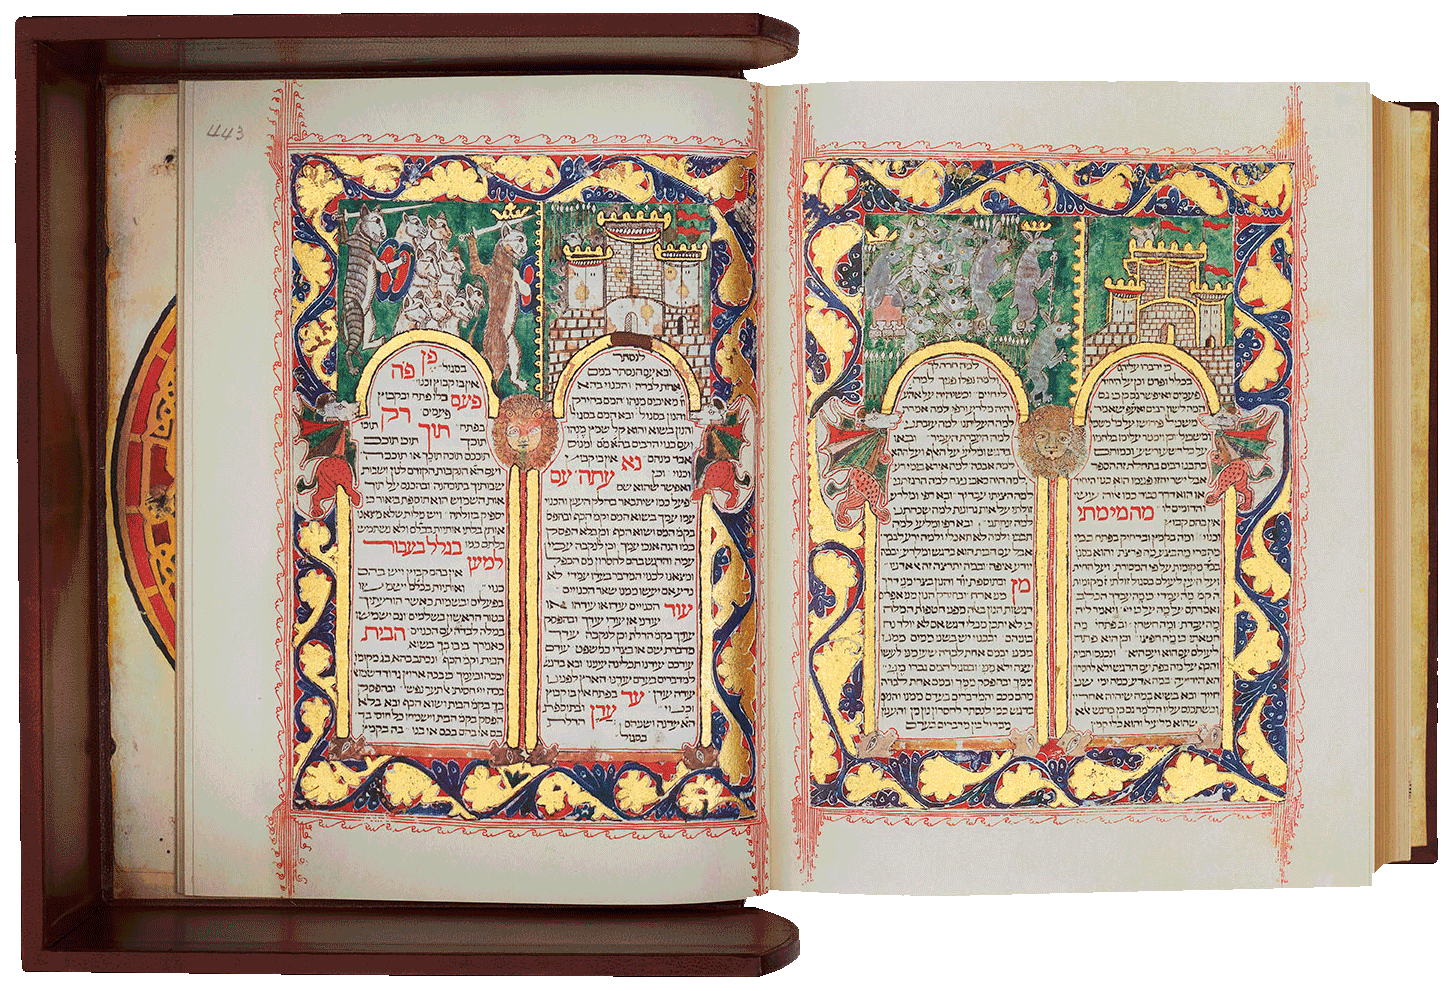 """Folio 443/442  Above the magnificent arcaded pages, an army of rabbits besieges a lone wolf in a castle on the right and an army of cats attacks a dogs' castle on the left. <small><a href=""""https://www.facsimile-editions.com/copyright/"""">© Copyright 2021 Facsimile Editions Ltd</a></small>"""